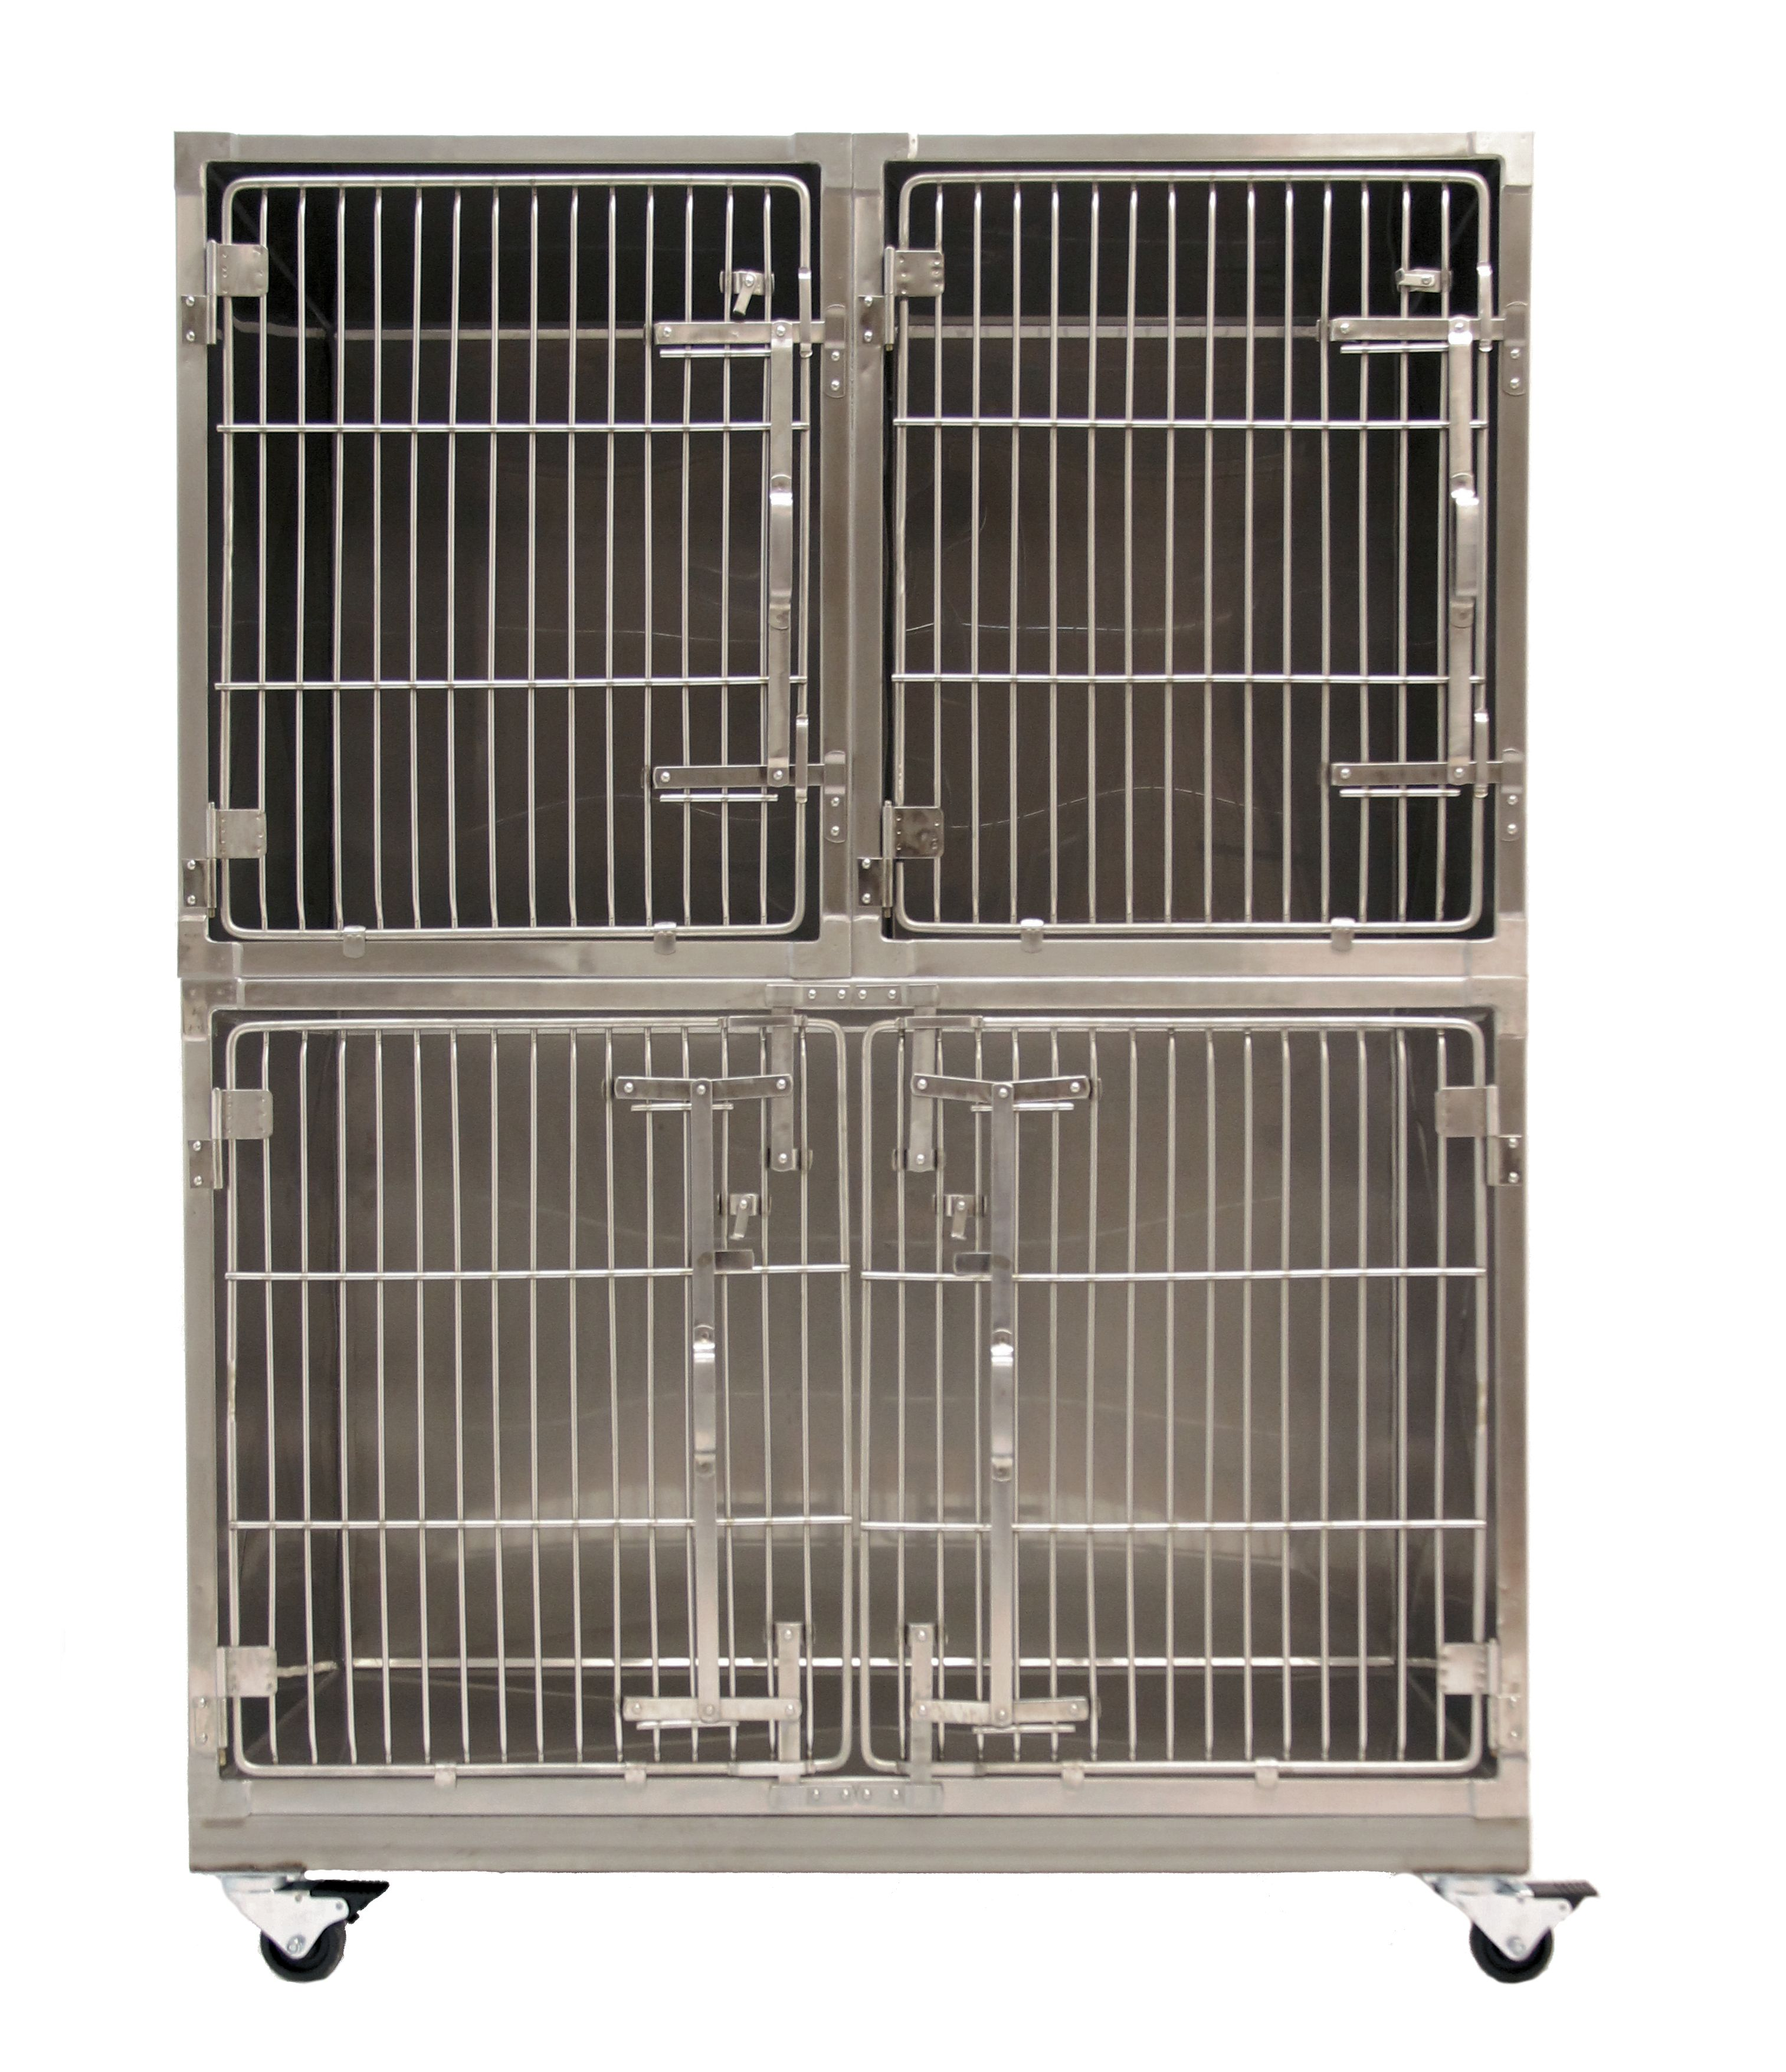 Metal Shelter Cat Kennels : Custom gallery dog kennels wash tubs stainless